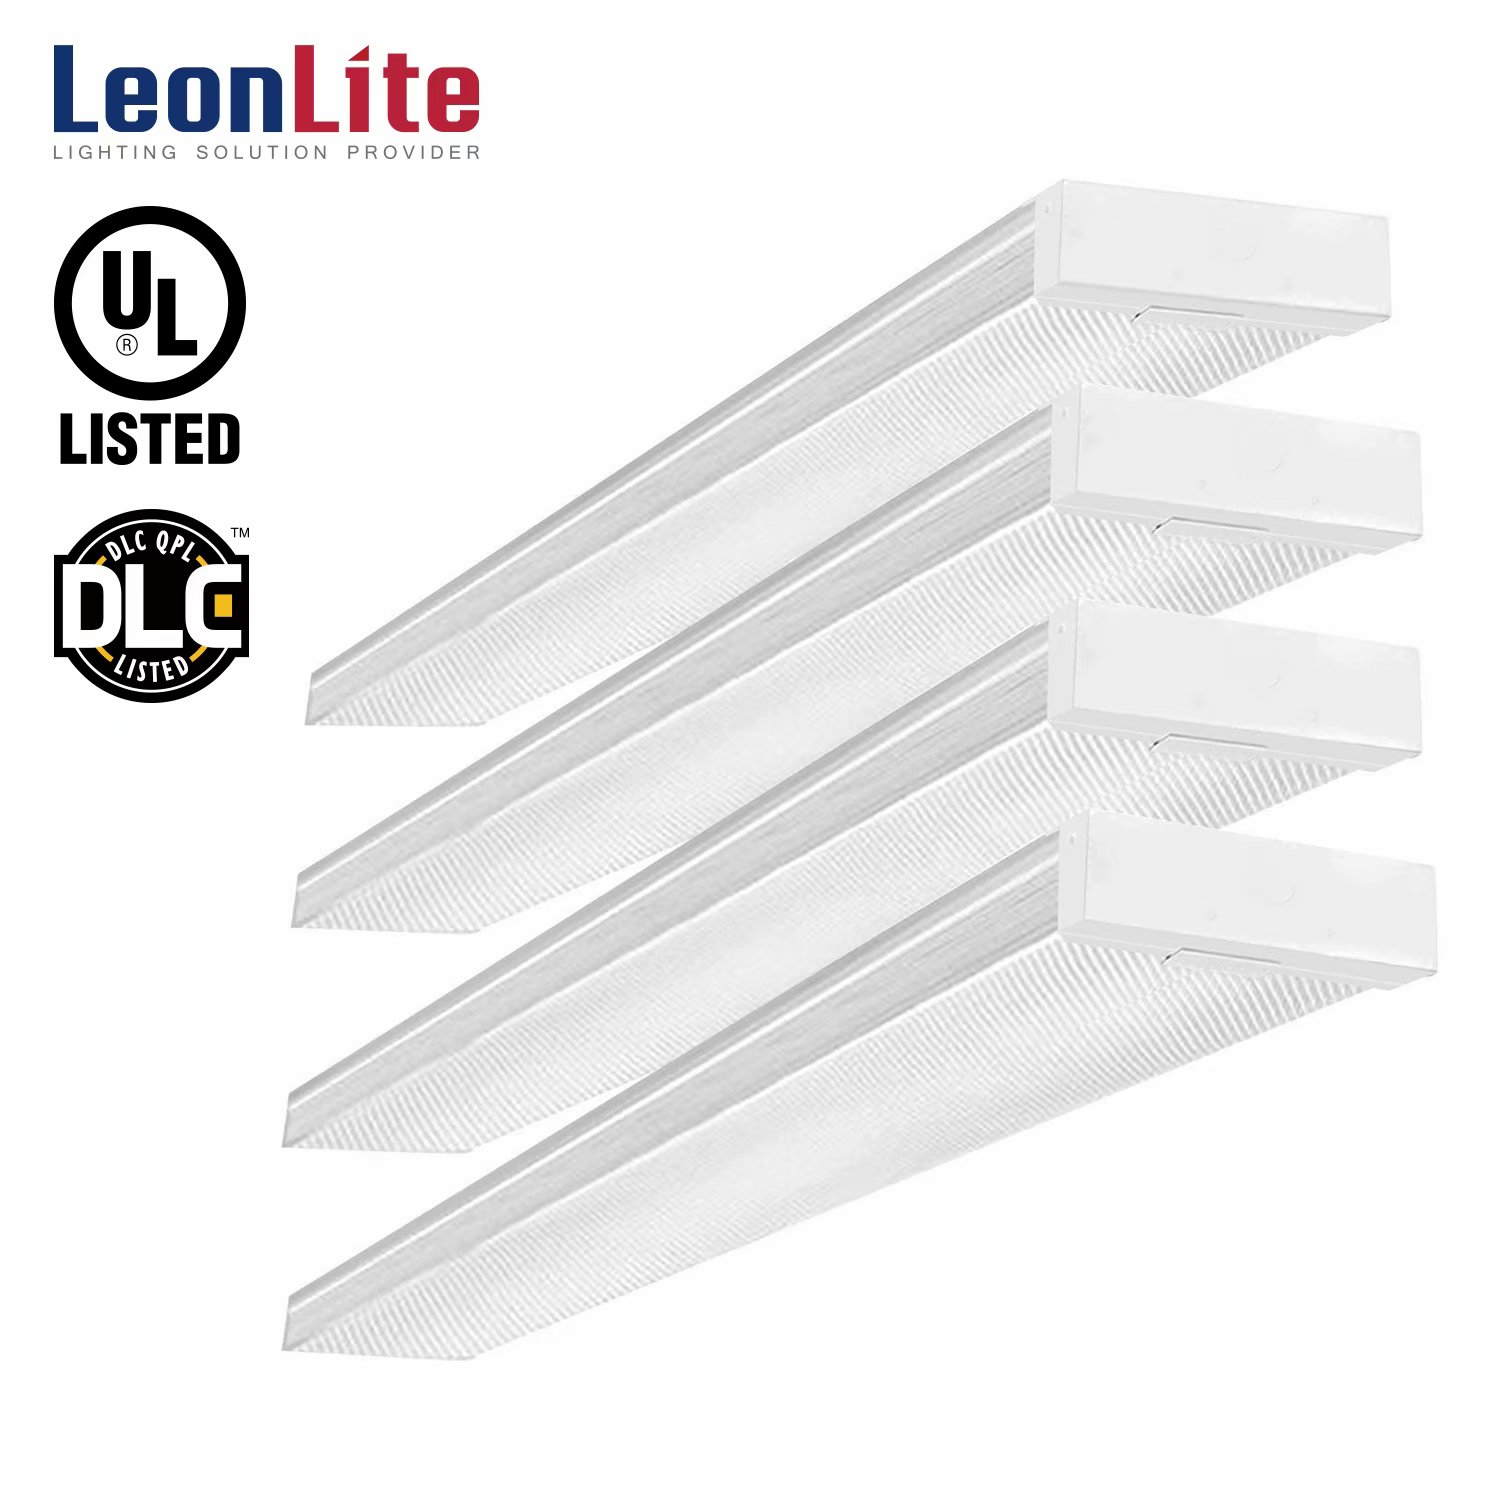 LEONLITE 4 Pack LED Shop Lights For Garage 4ft, 42W LED